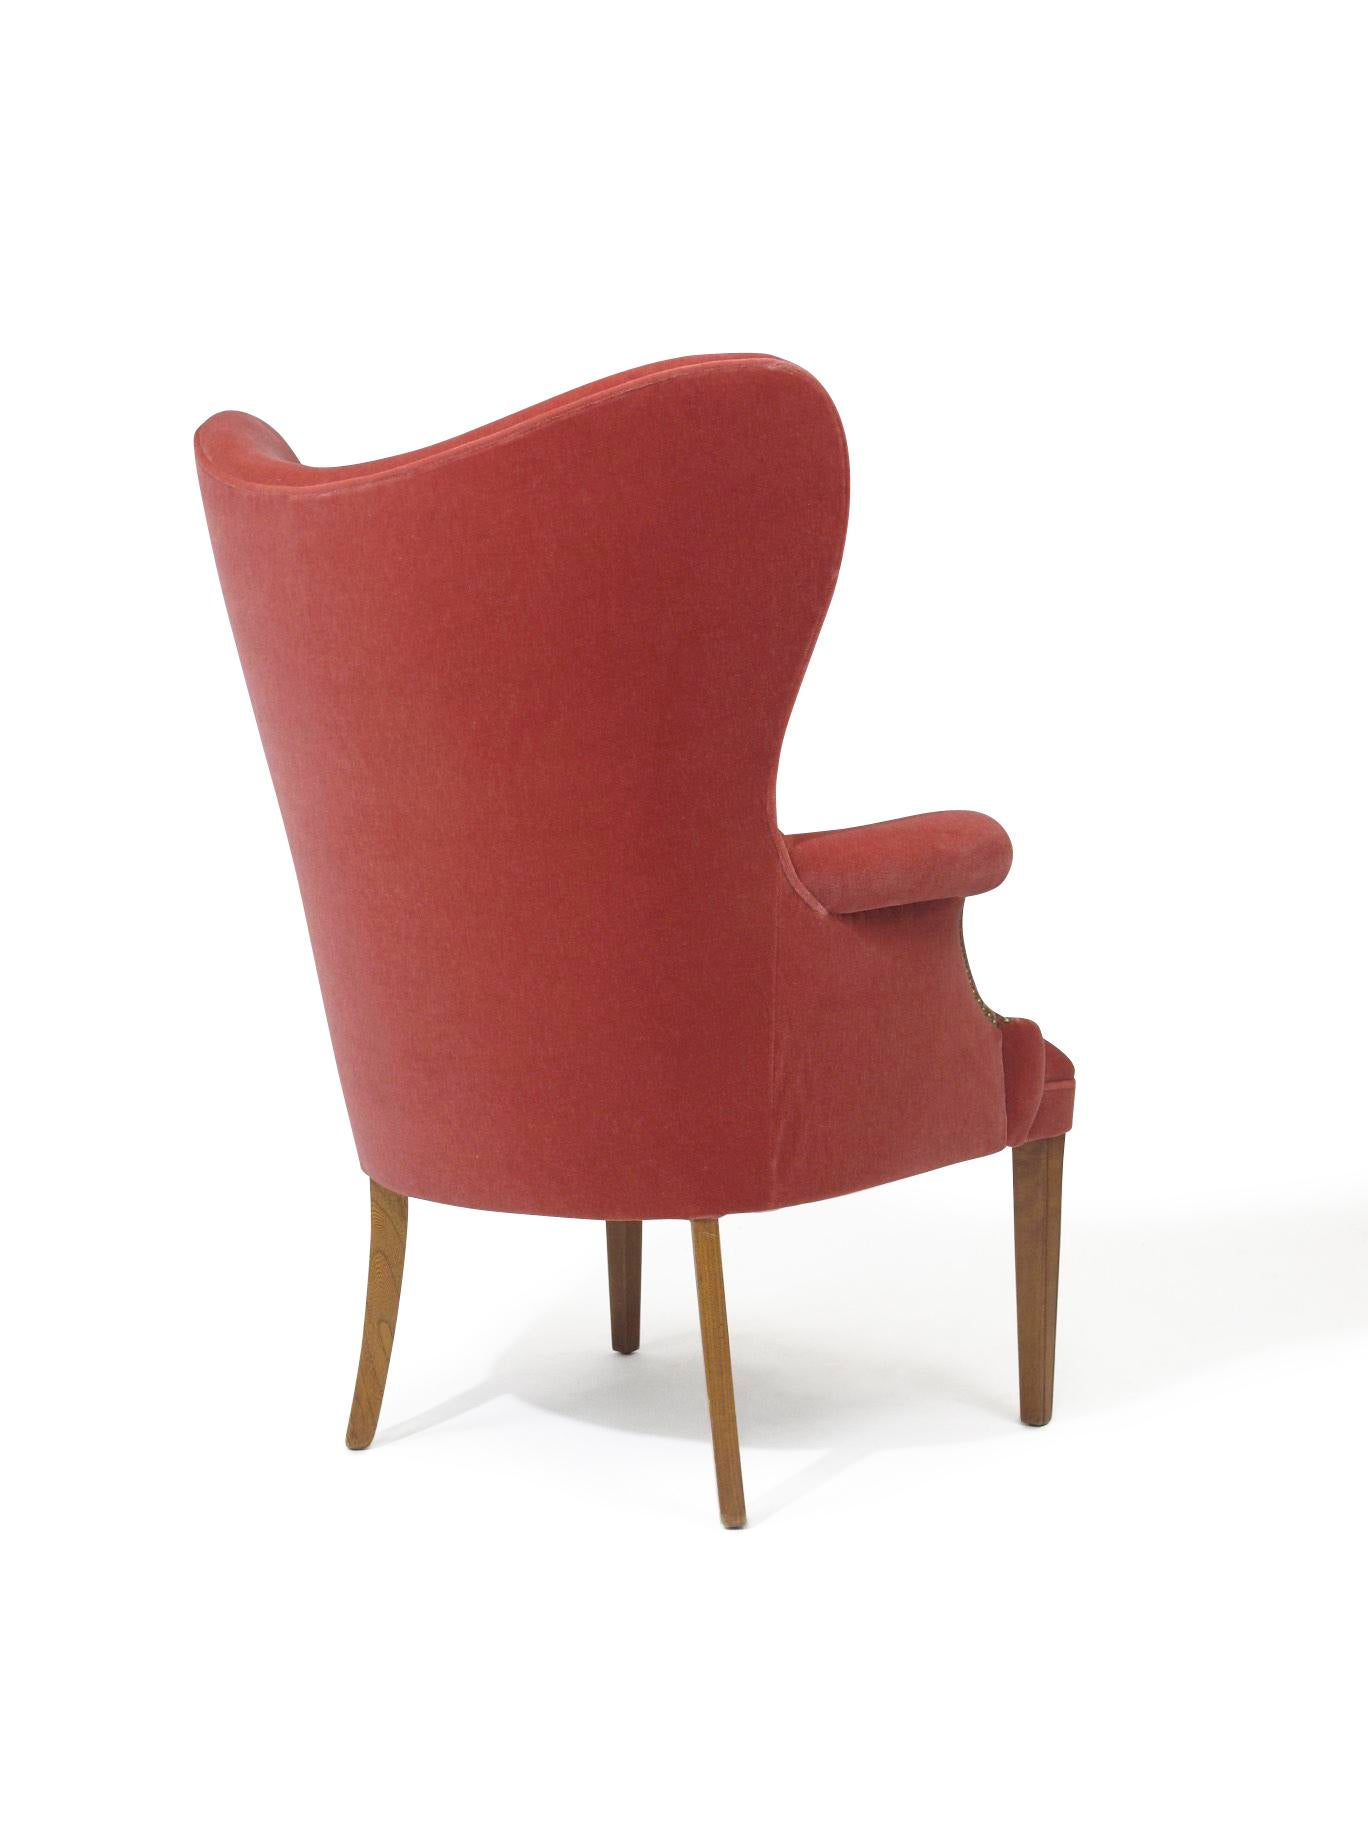 Wonderful Hollywood Regency Pink Mohair Lounge Chairs   Image 5 Of 7